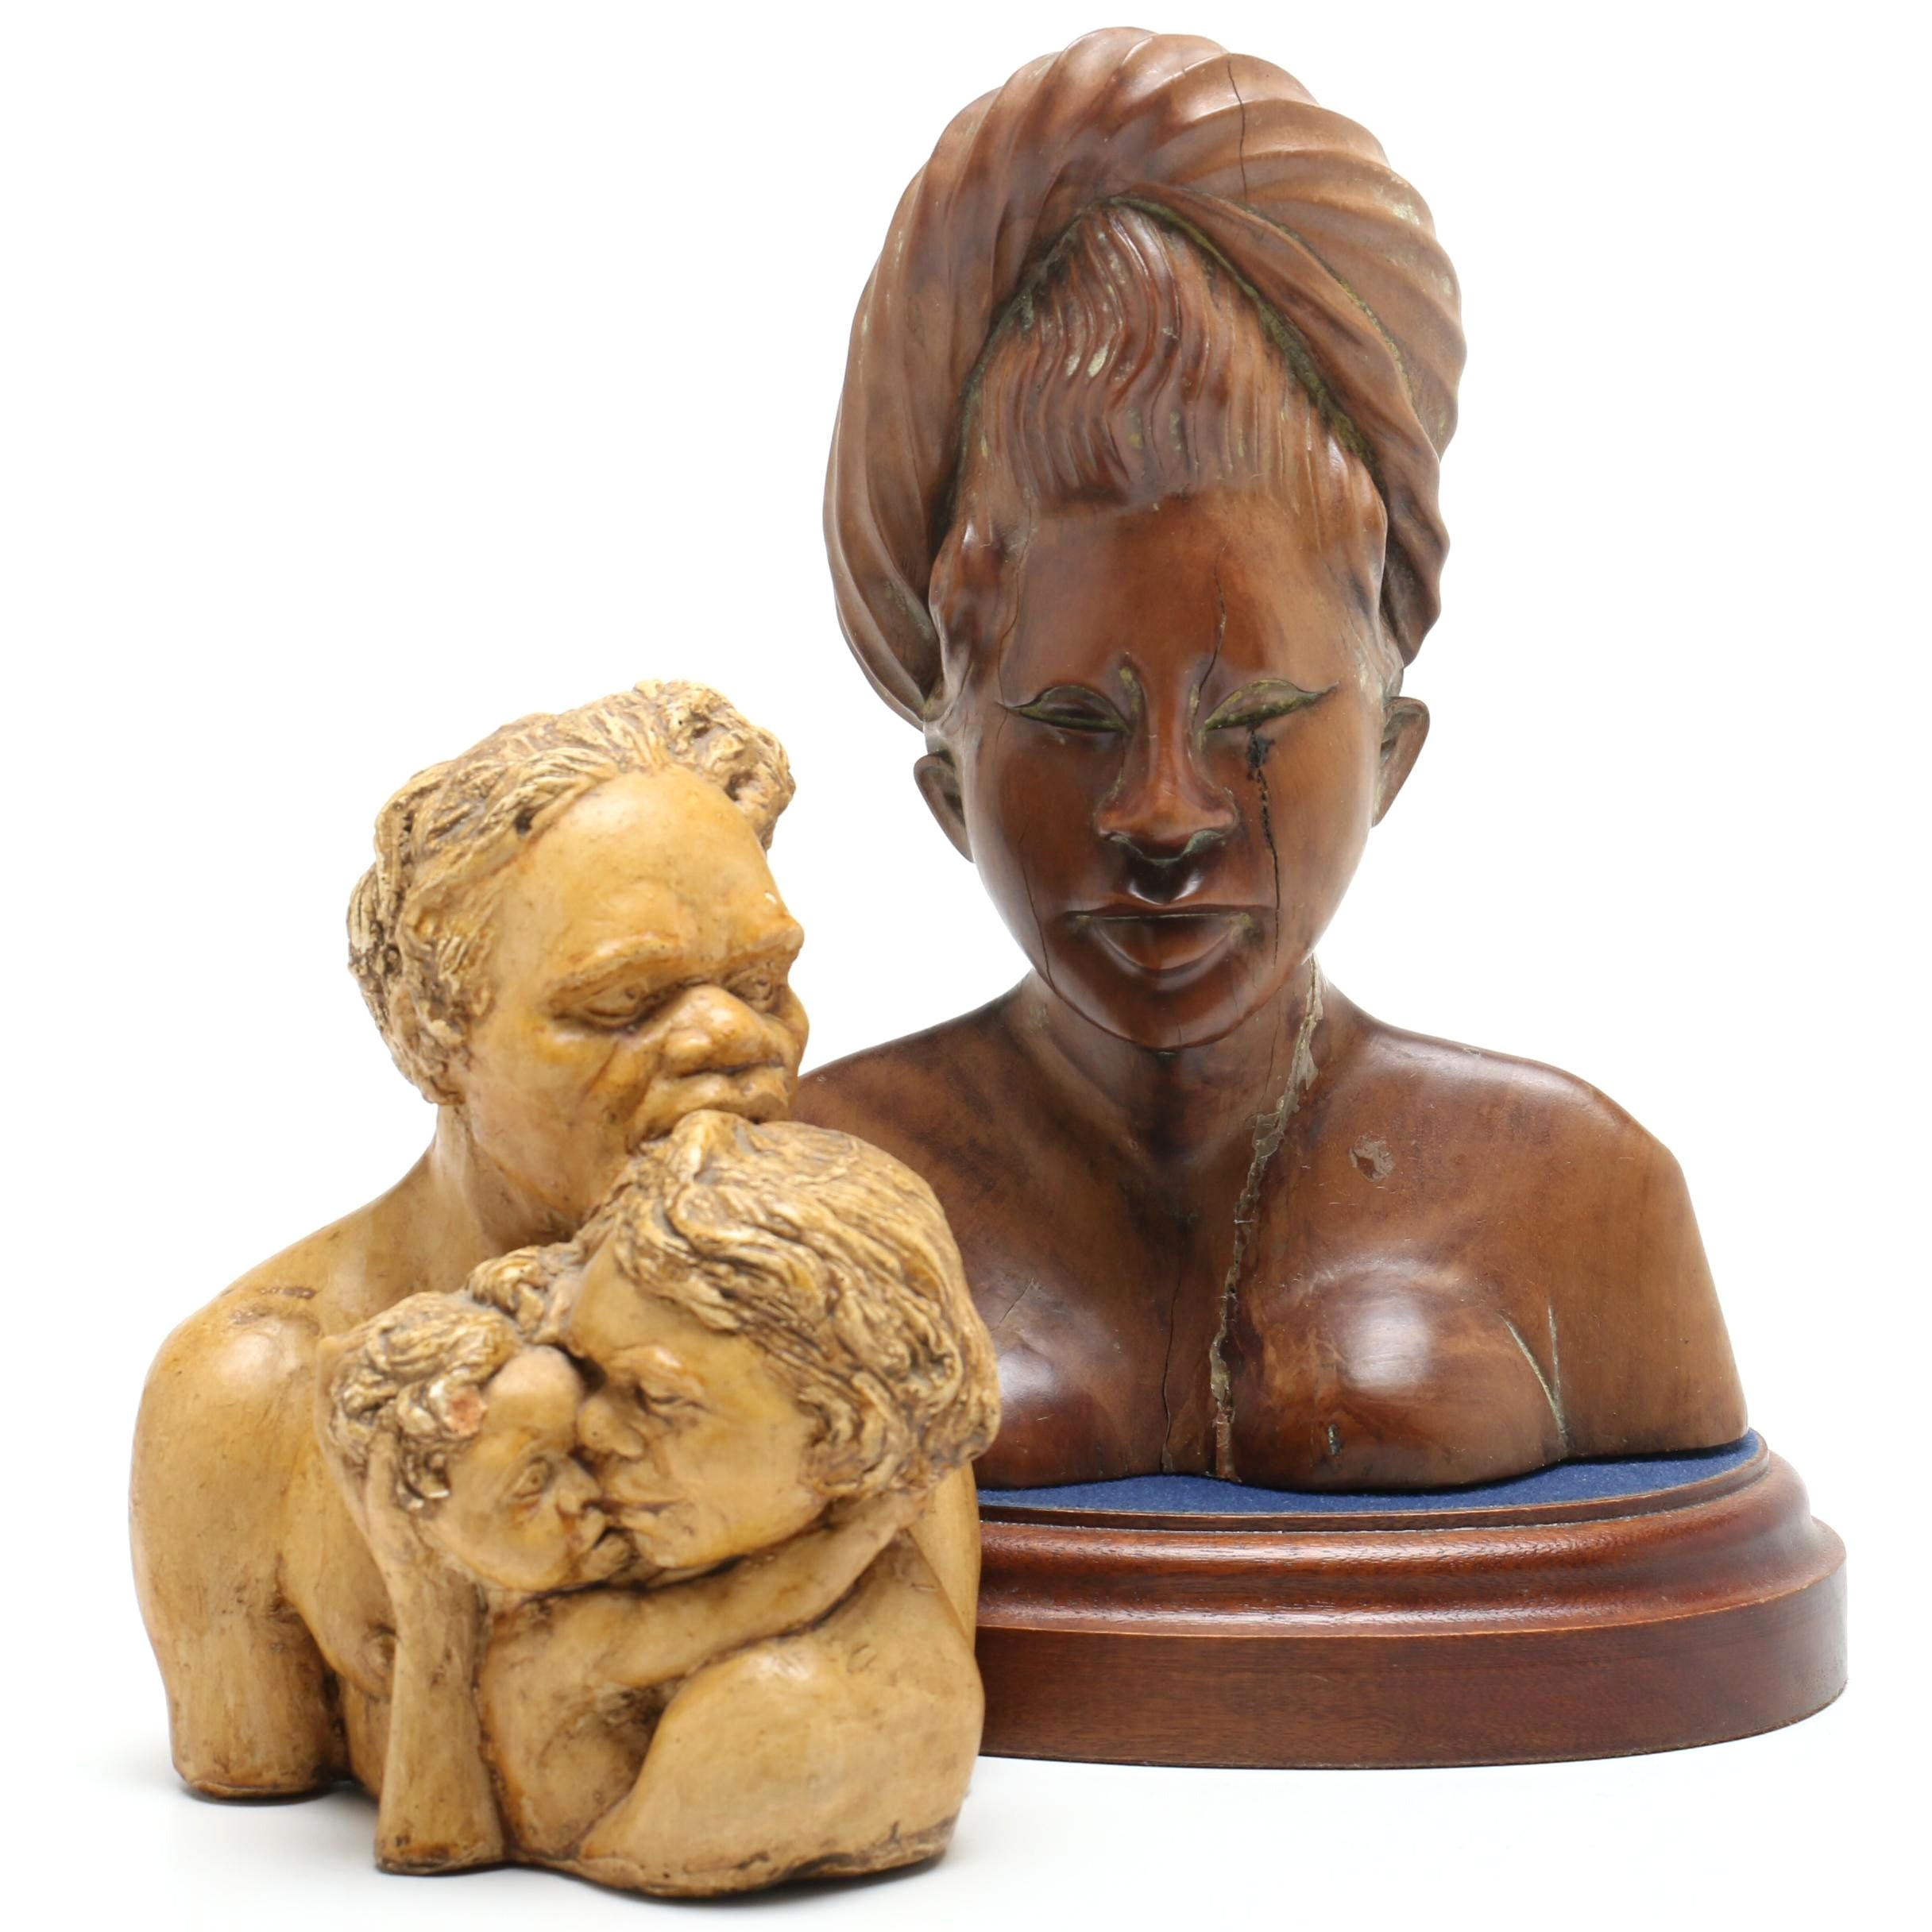 E & B Australia Ceramic Bust of Family and Carved Wooden African Bust